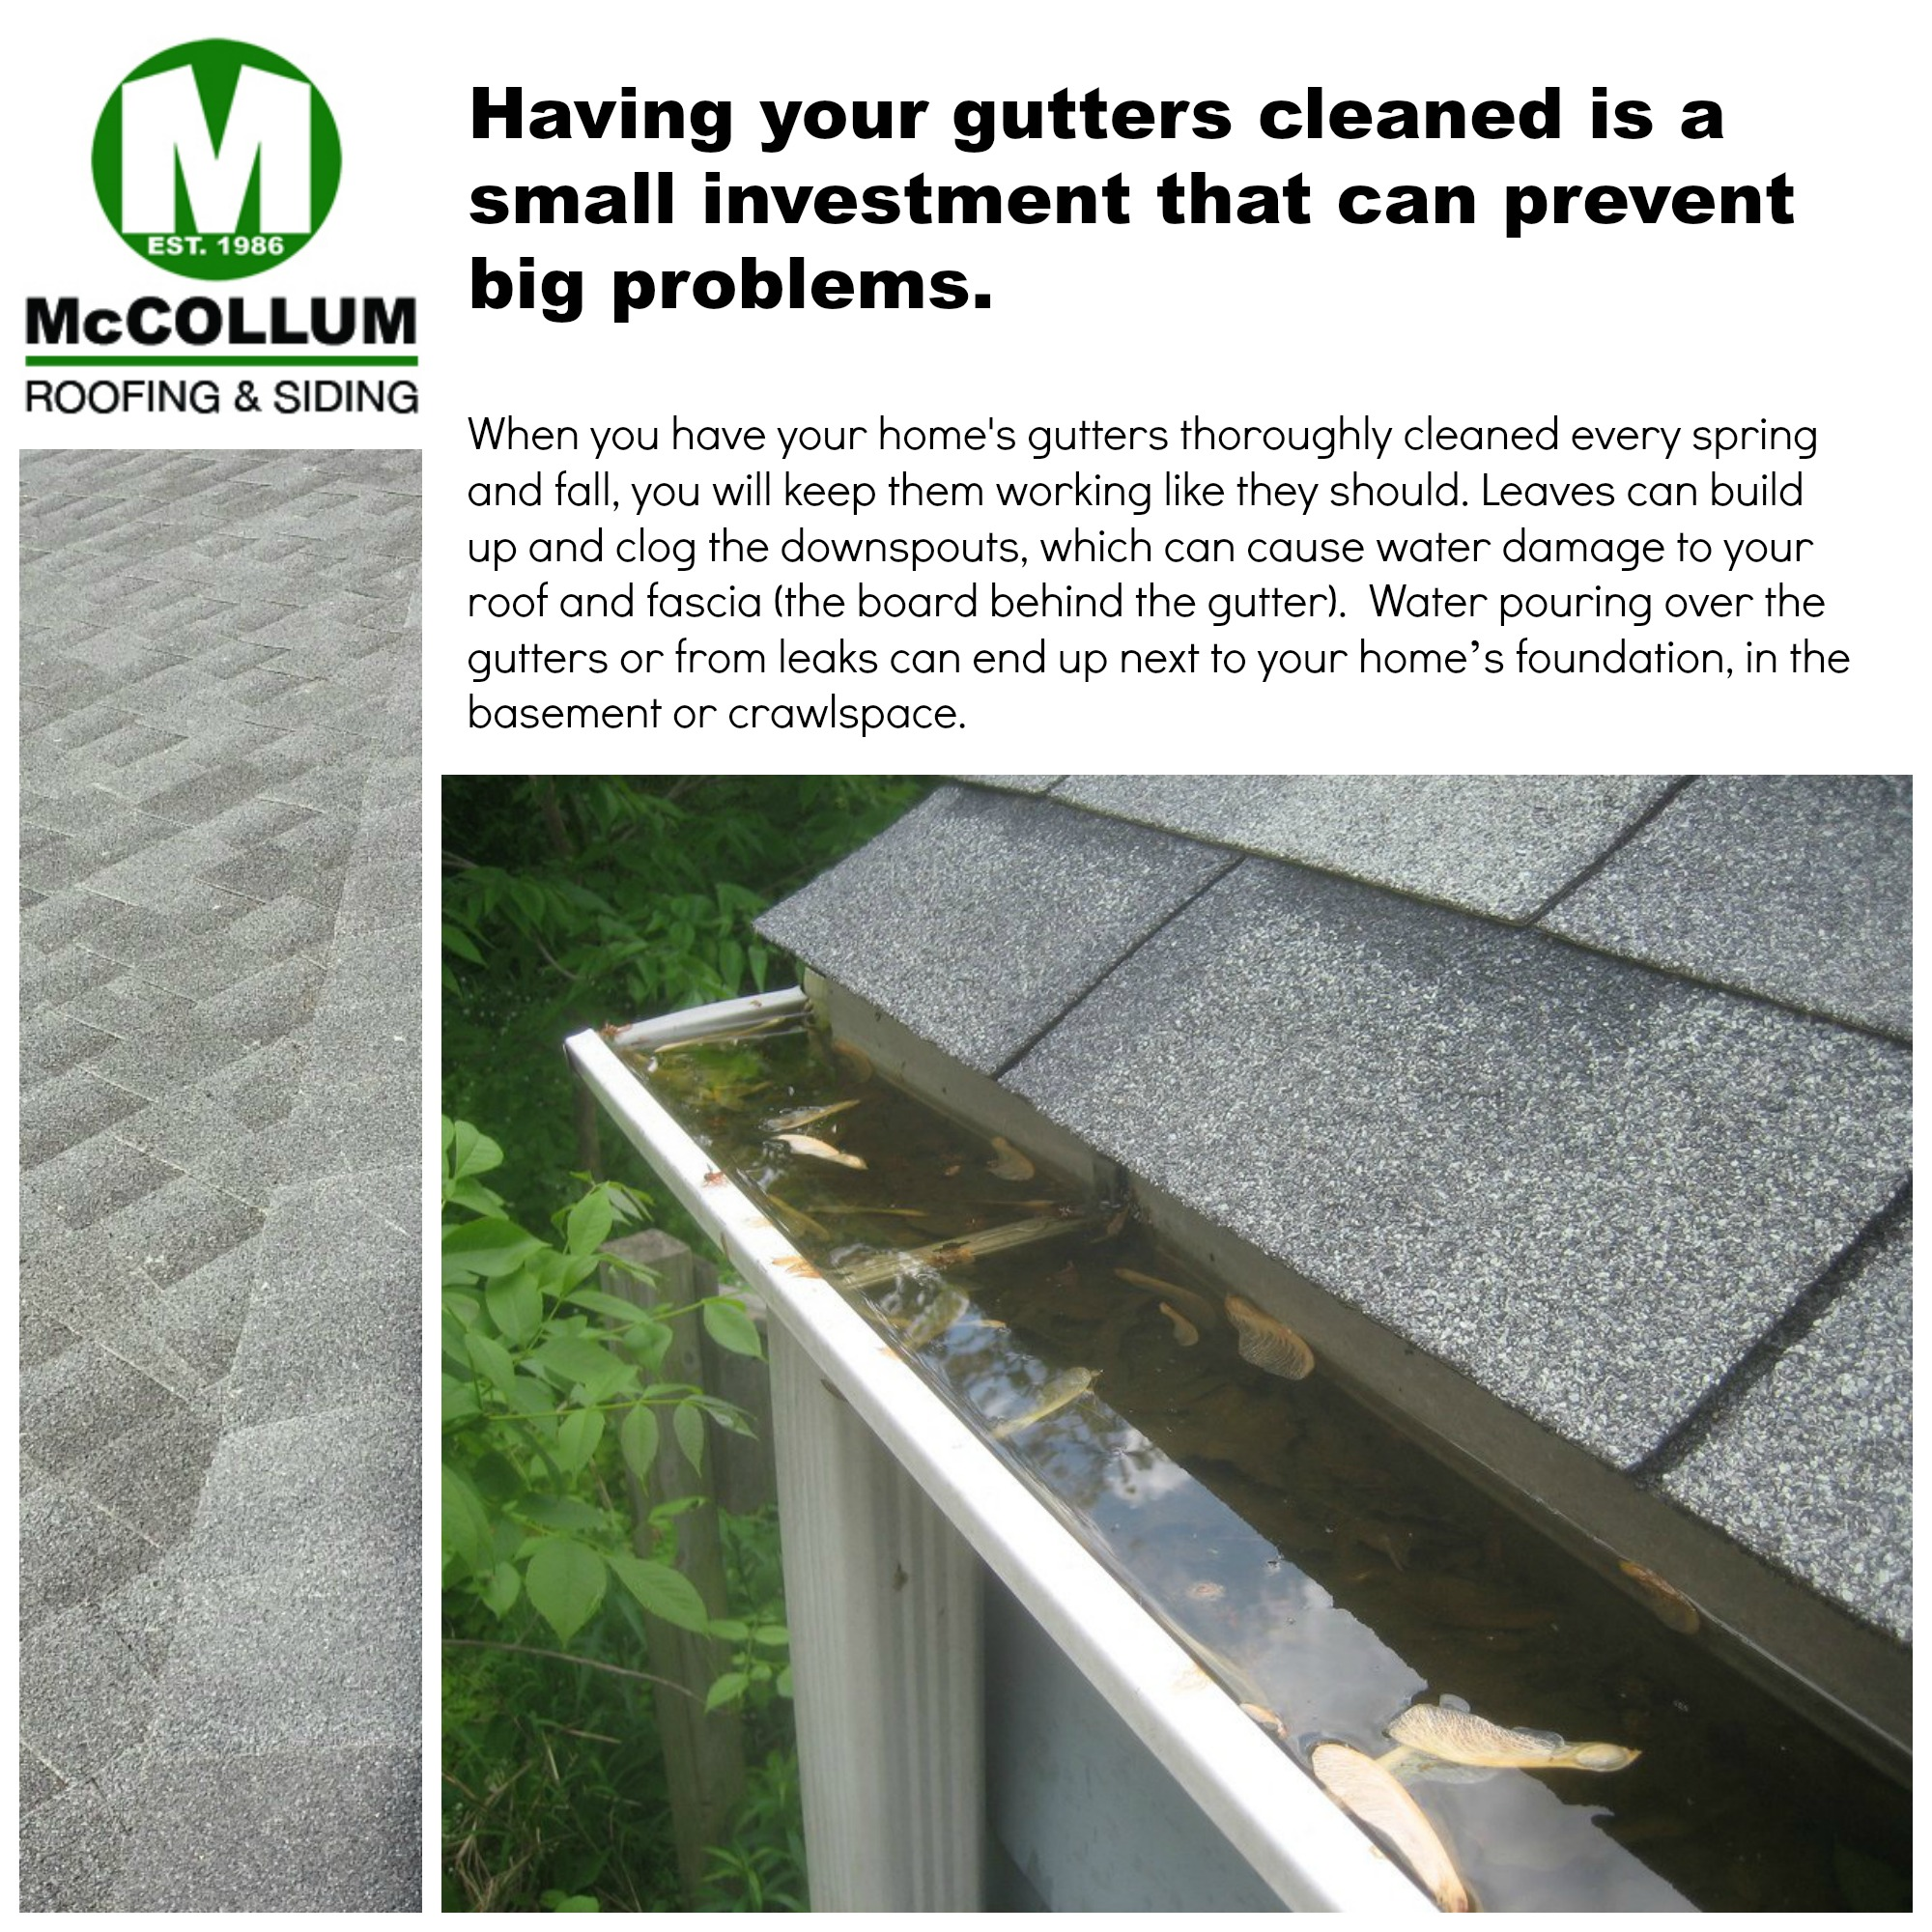 Having your gutters cleaned is very important.